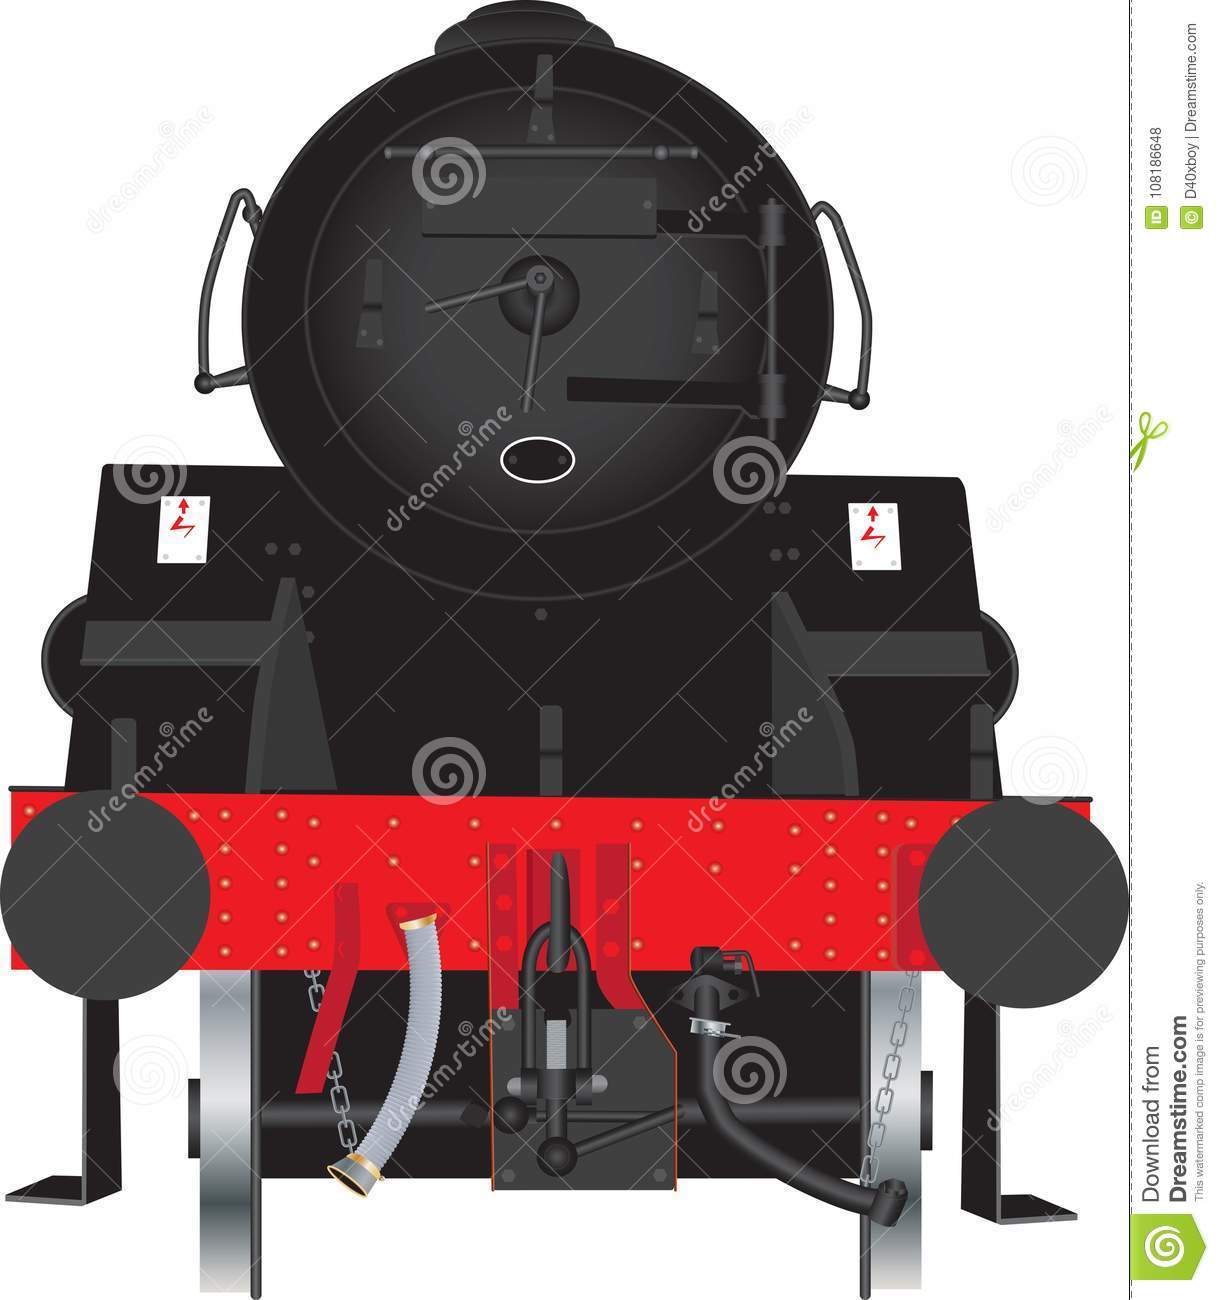 Steam Locomotive Front Stock Vector Illustration Of Powerful Car Engine Diagram